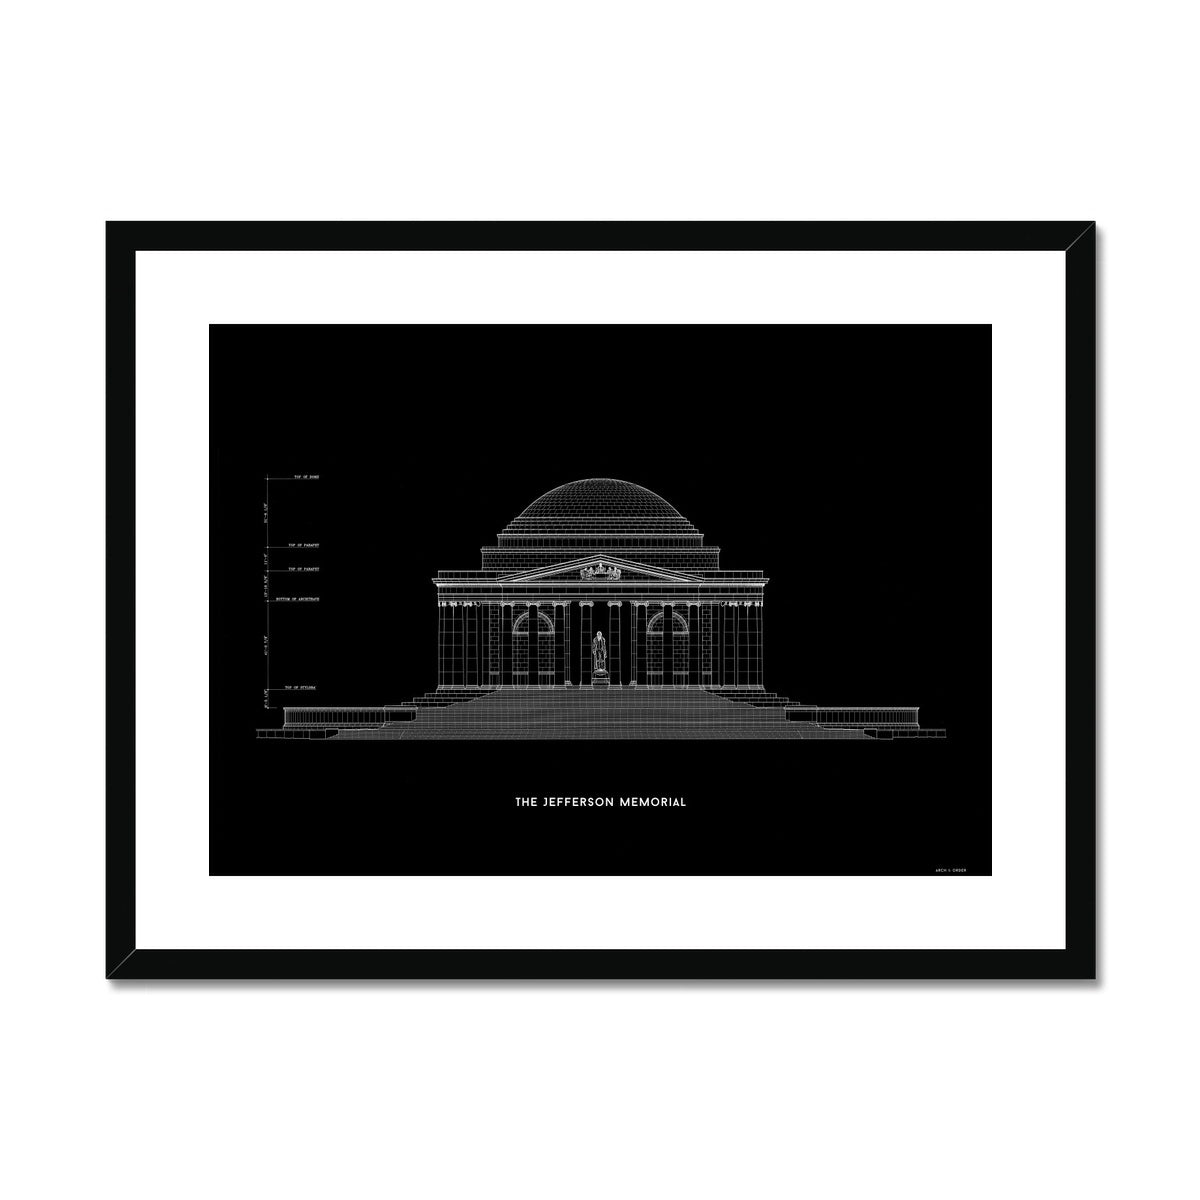 The Jefferson Memorial North Elevation - Black -  Framed & Mounted Print